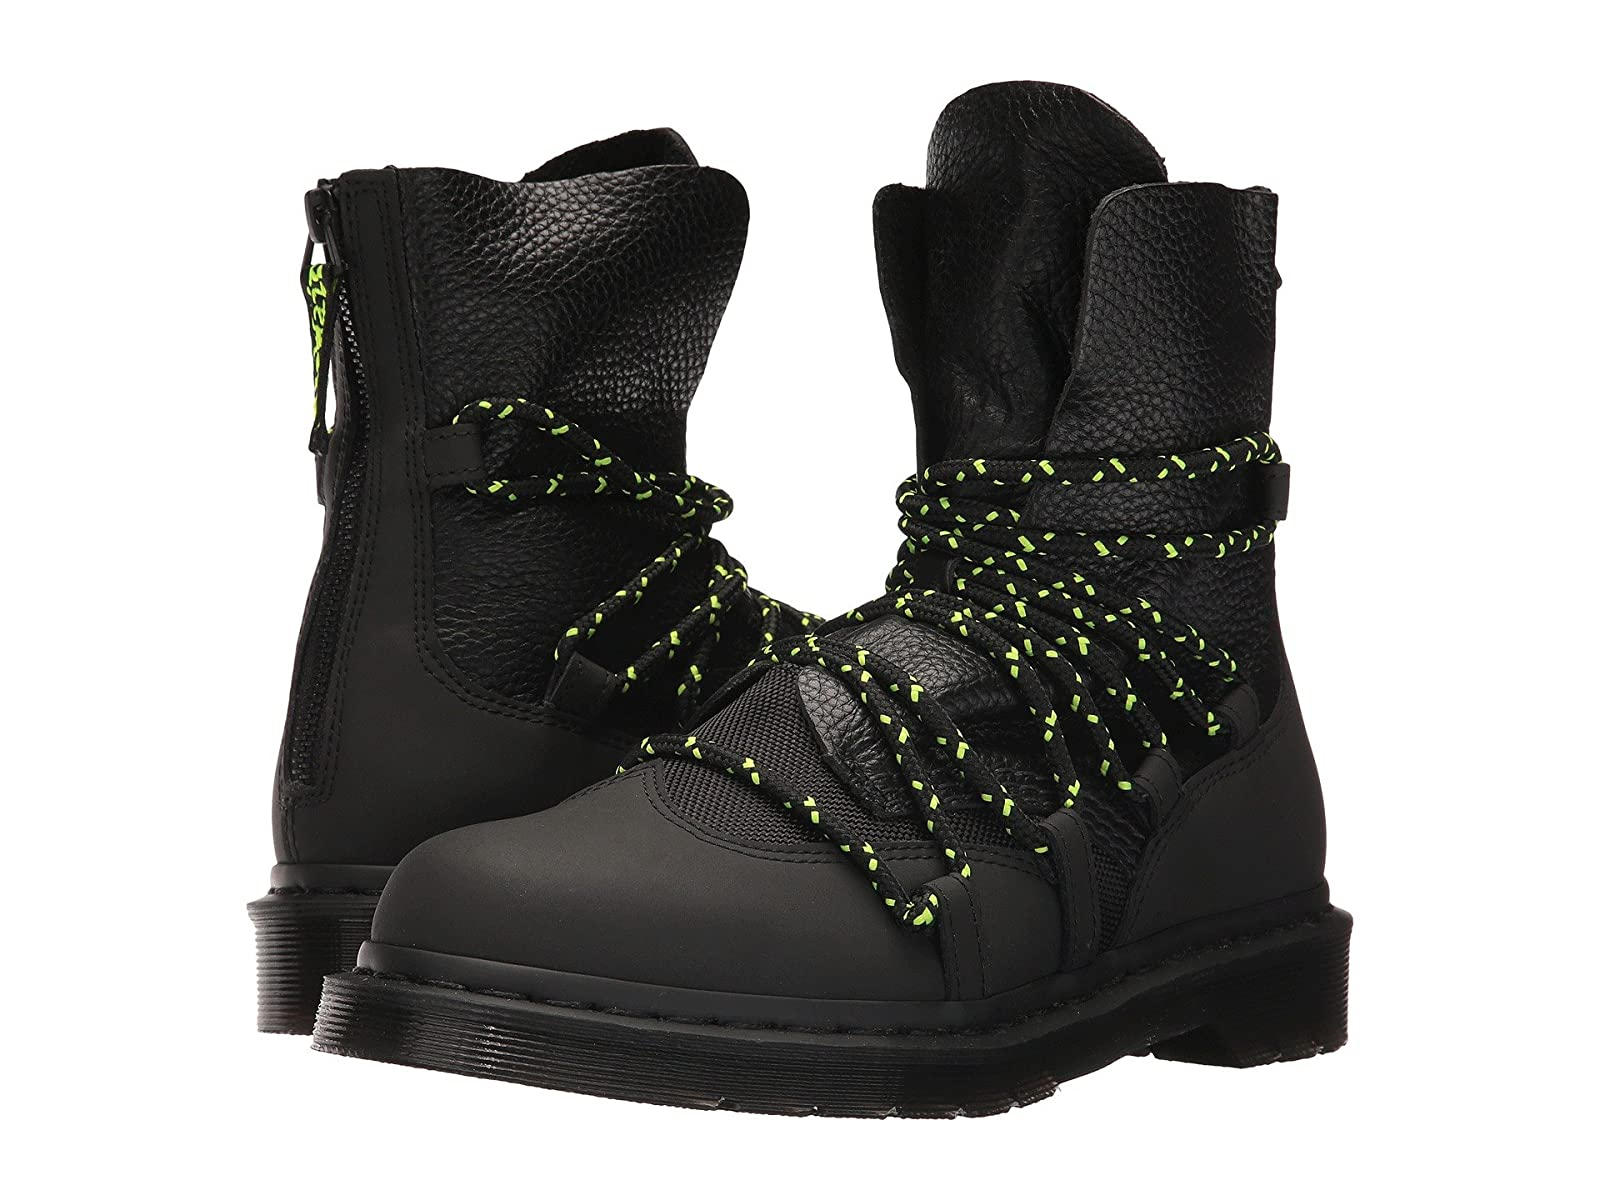 Dr. Martens Zelda Extreme Lace BootCheap and distinctive eye-catching shoes